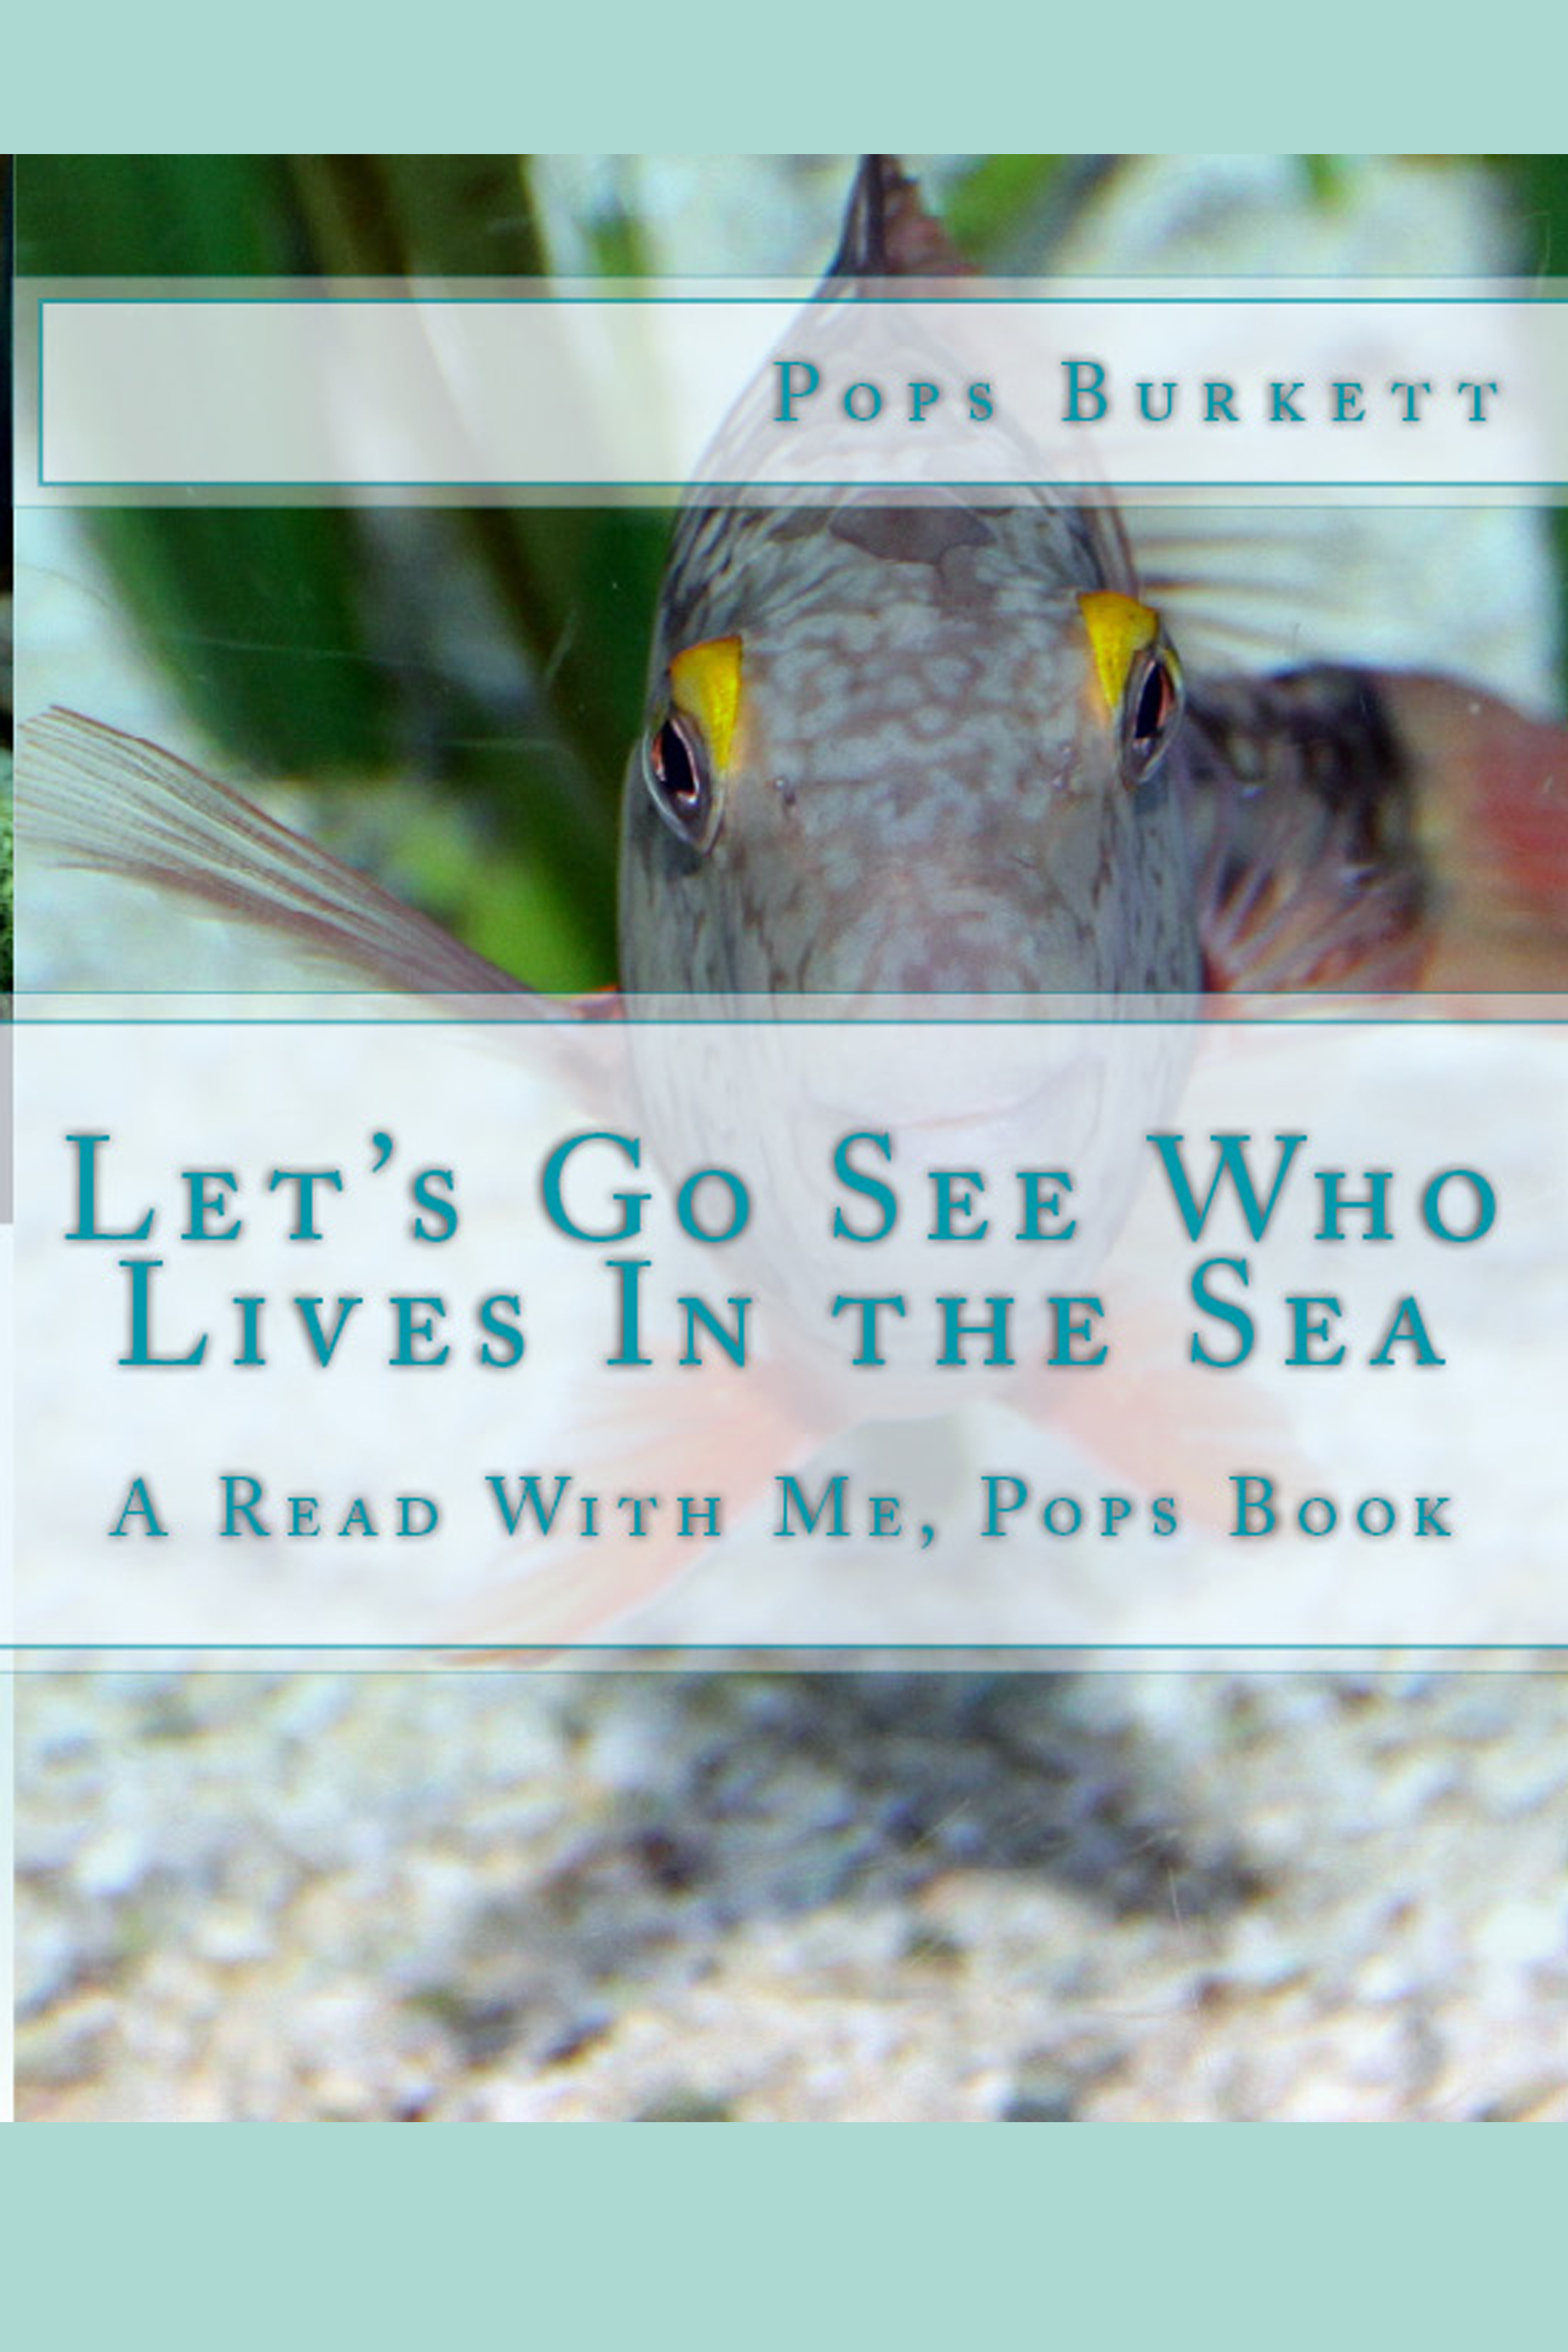 Let's Go See Who Lives In the Sea!